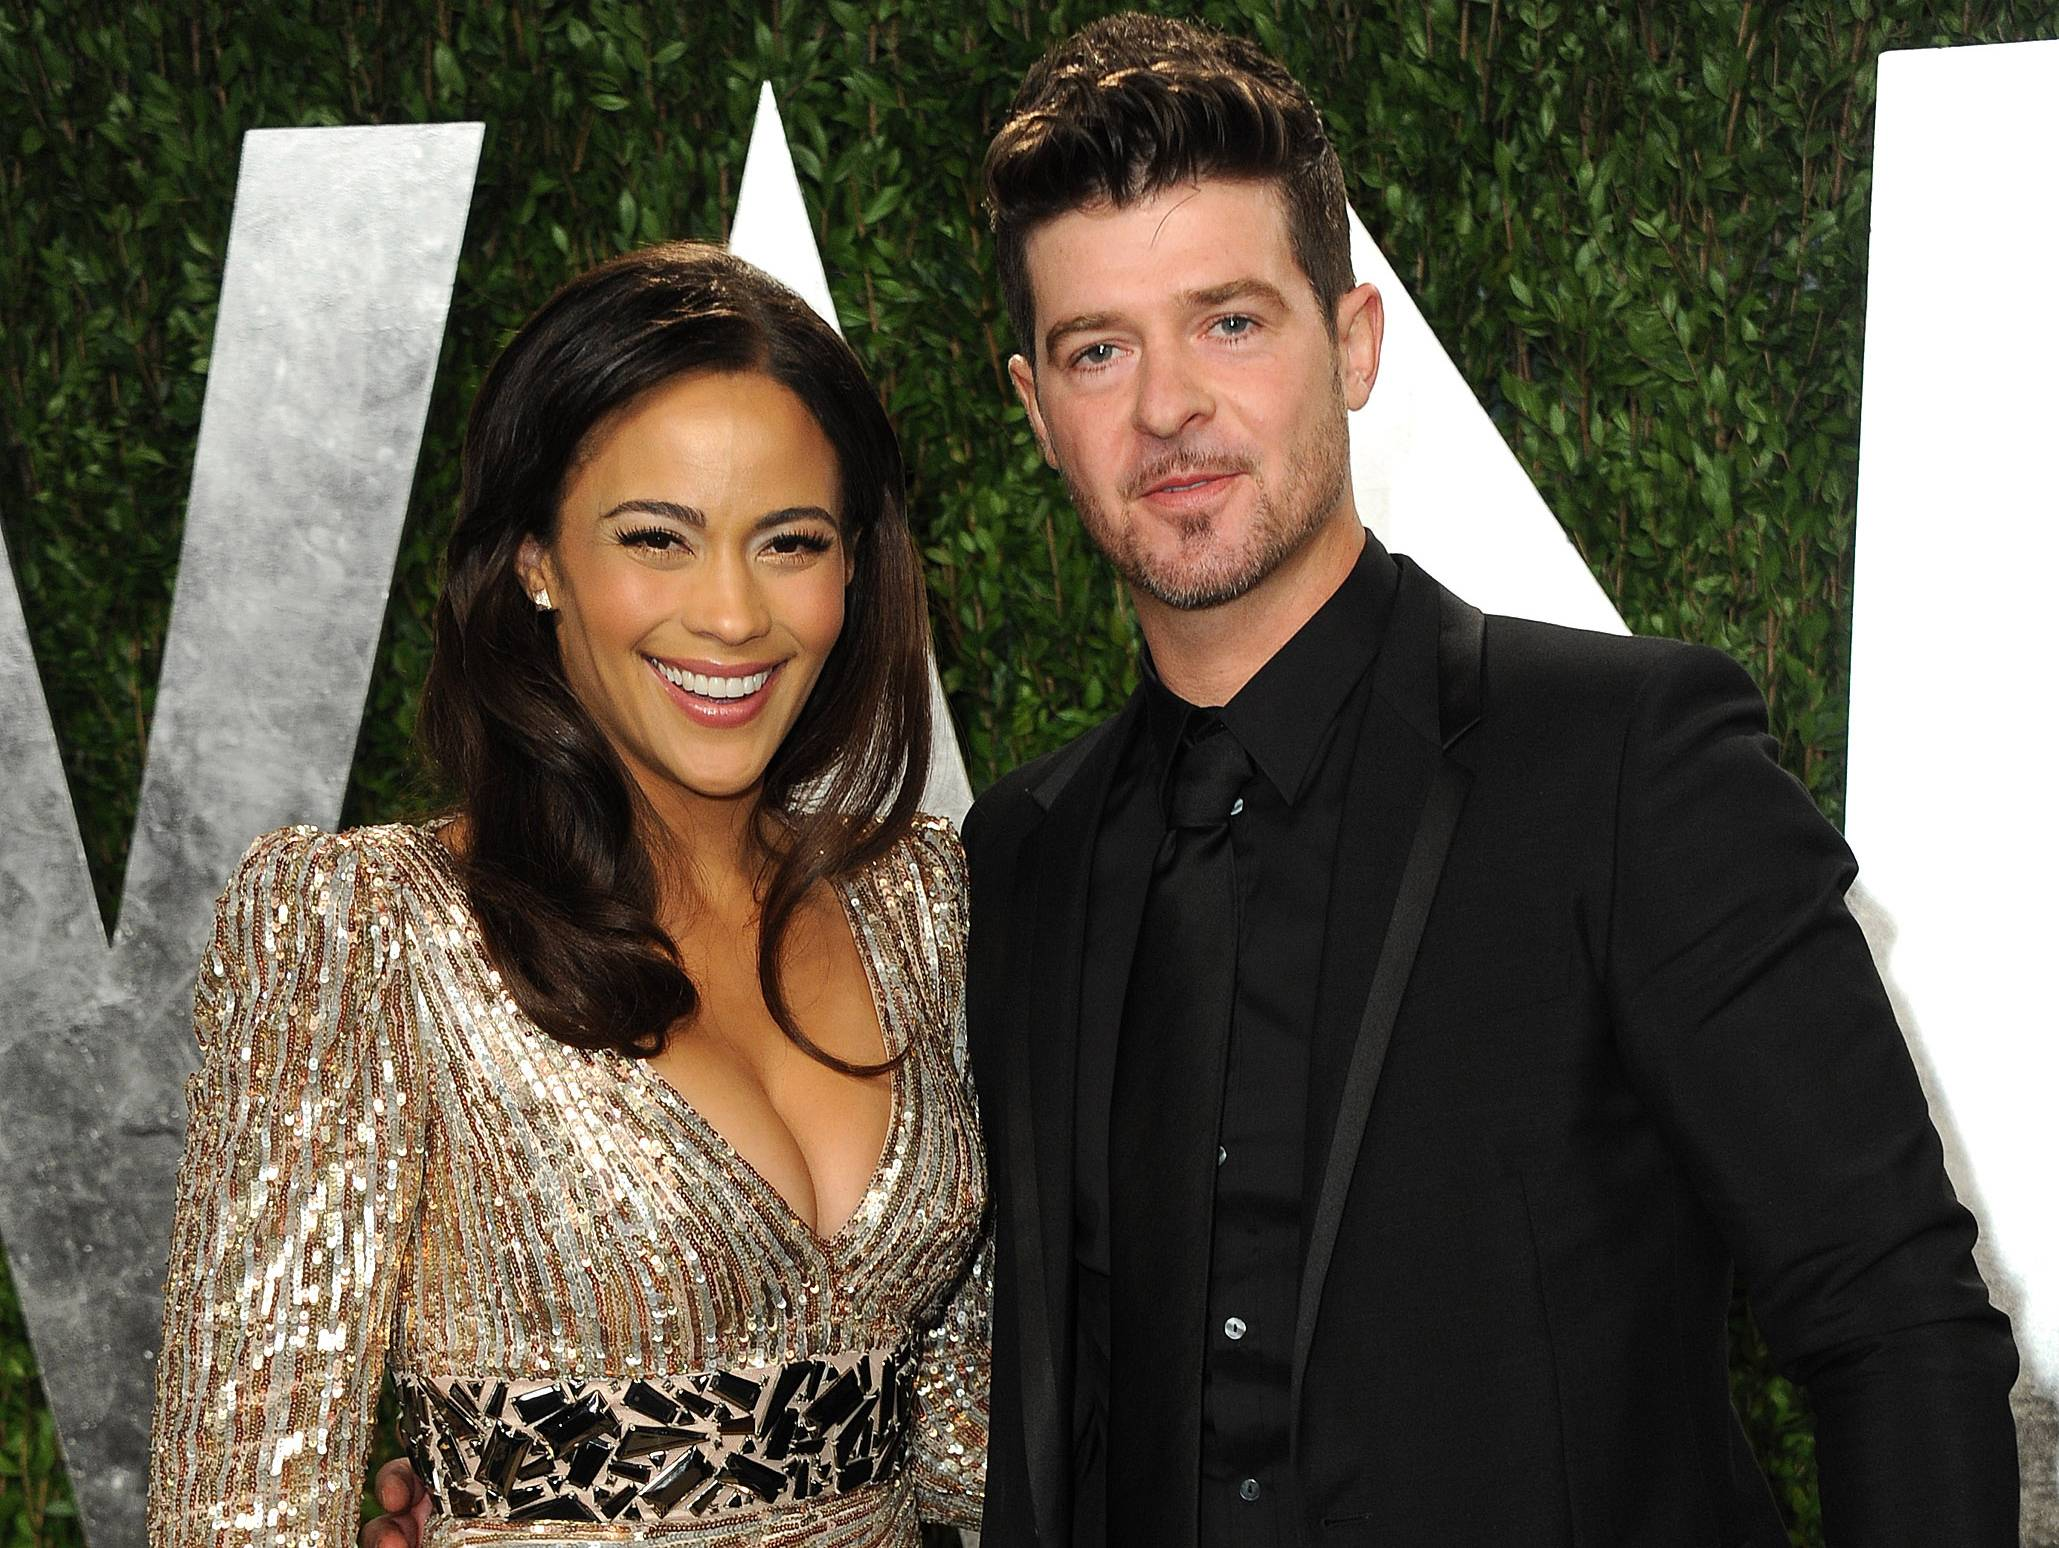 Paula Patton and Robin Thicke are calling it quits.